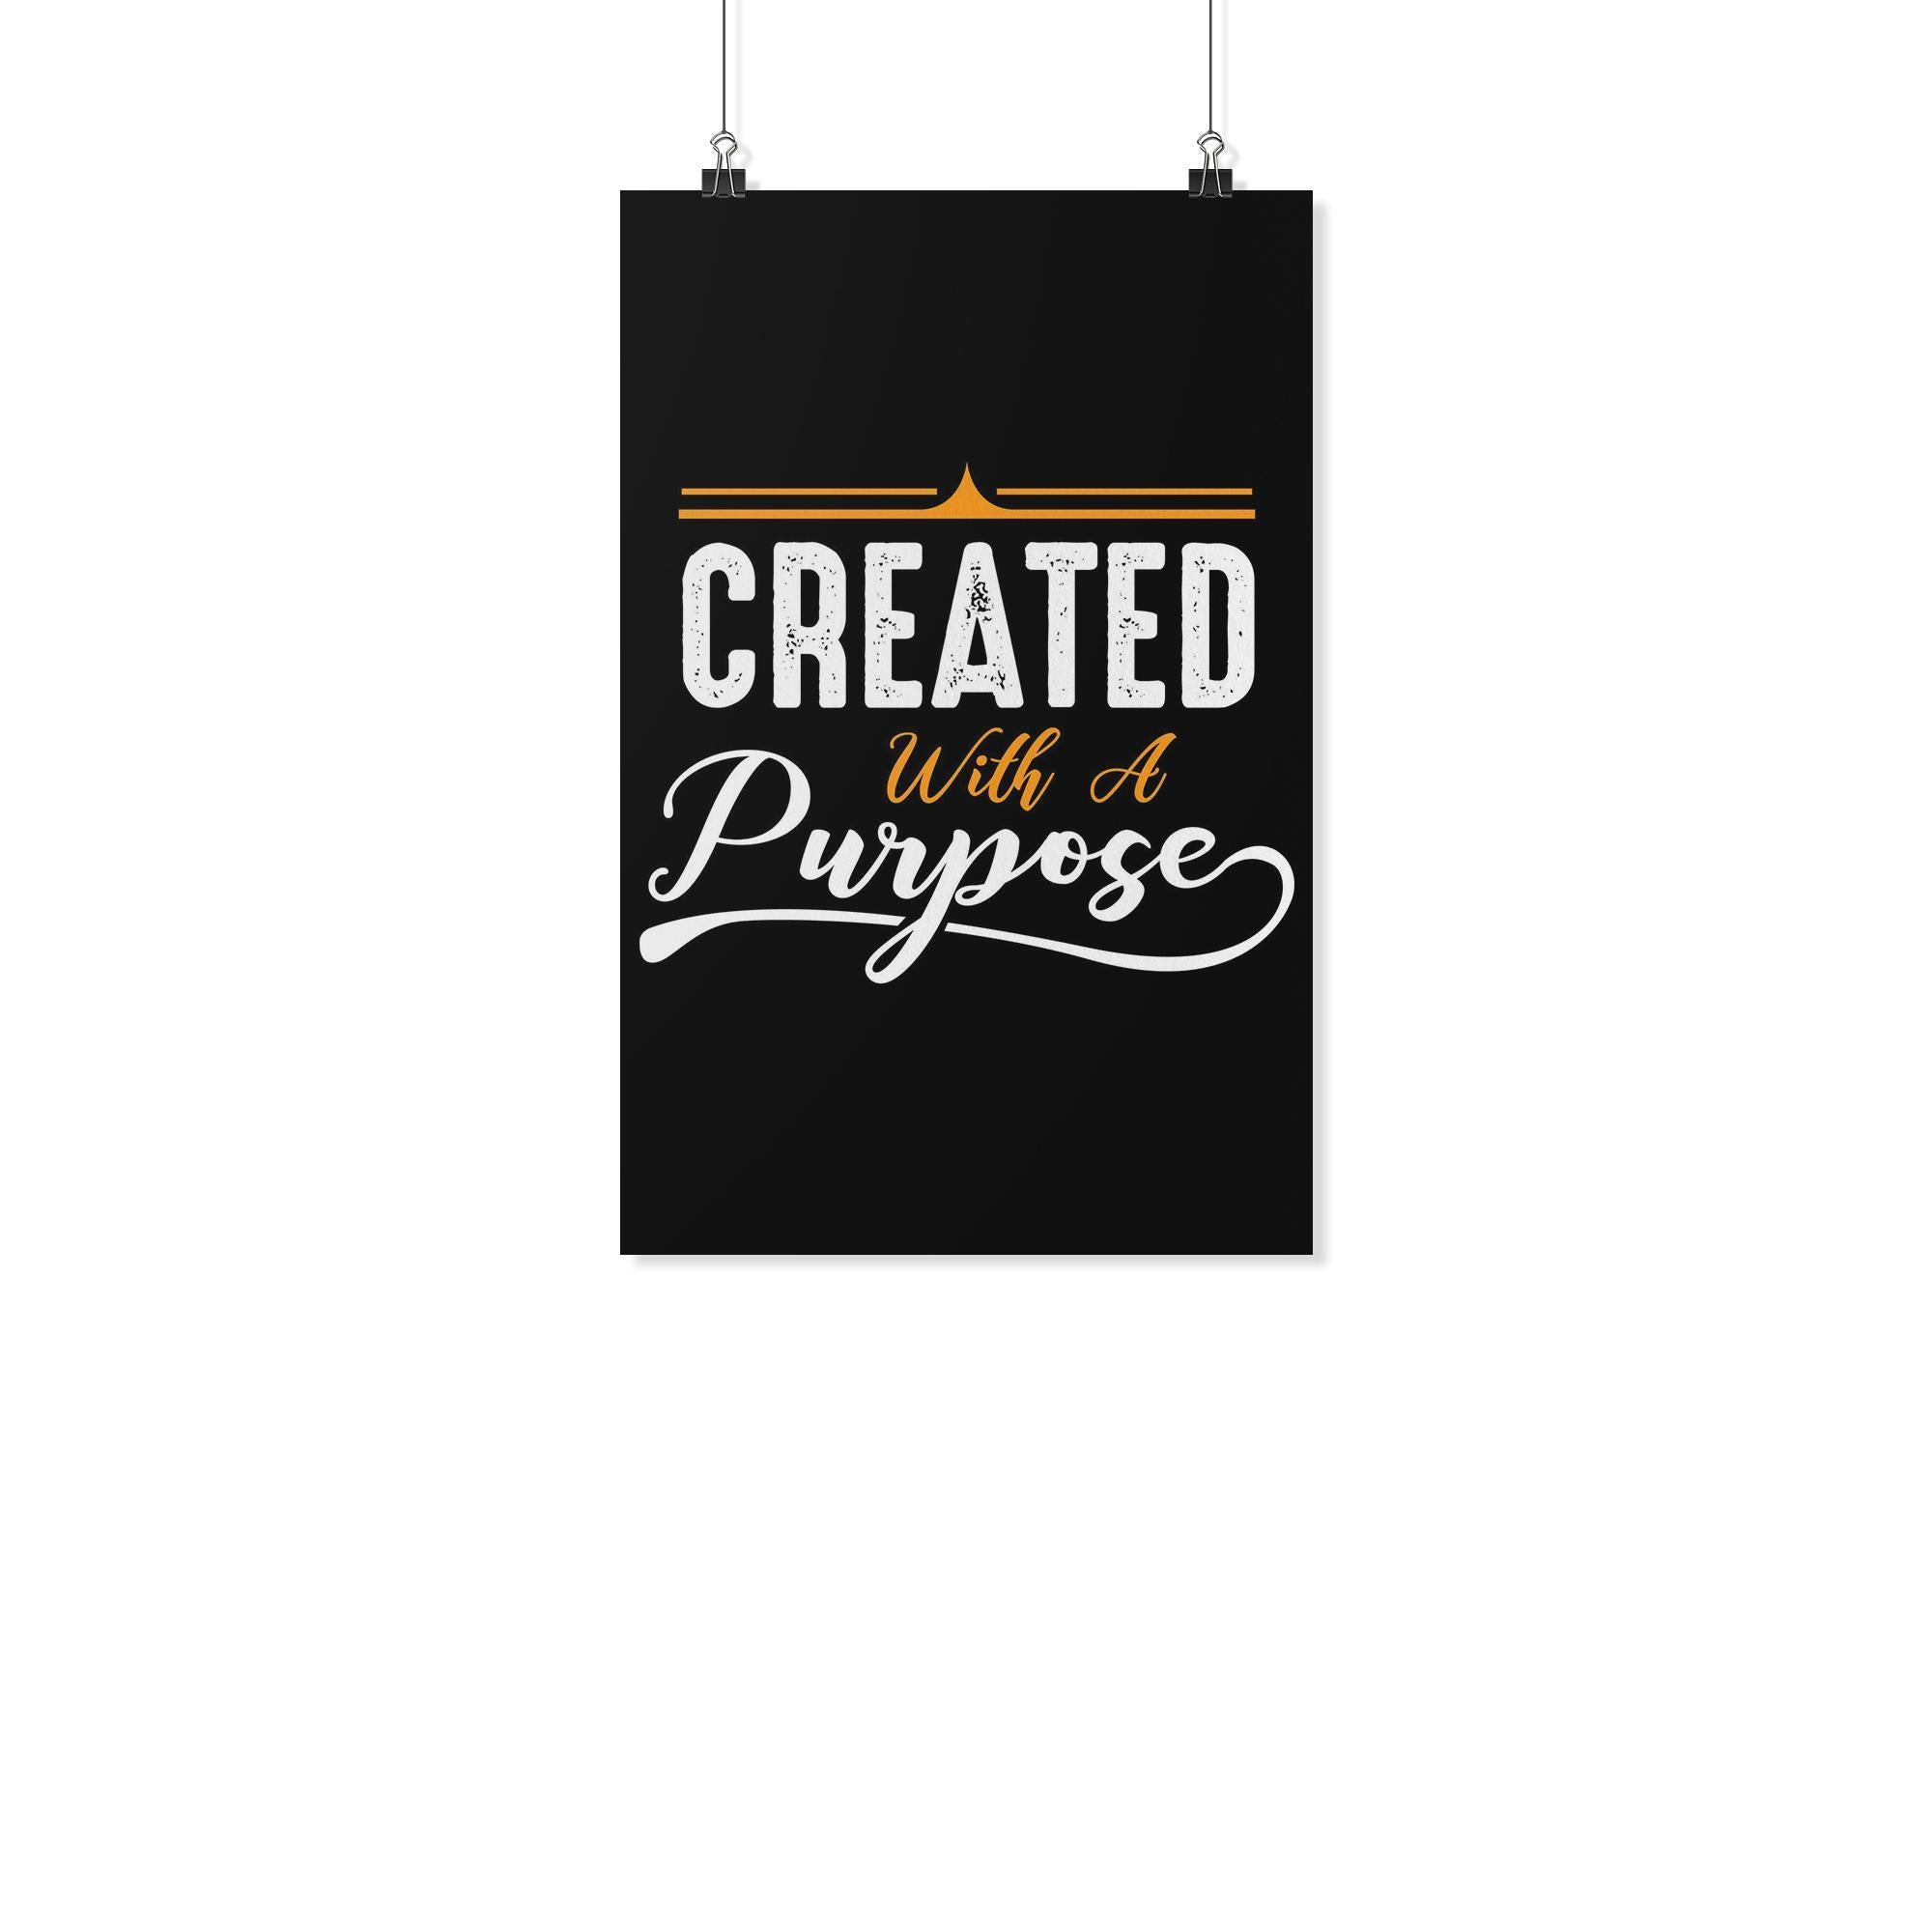 Created With A Purpose Christian Poster Wall Art Room Decor Gift Idea Religious-Posters 2-11x17-JoyHip.Com